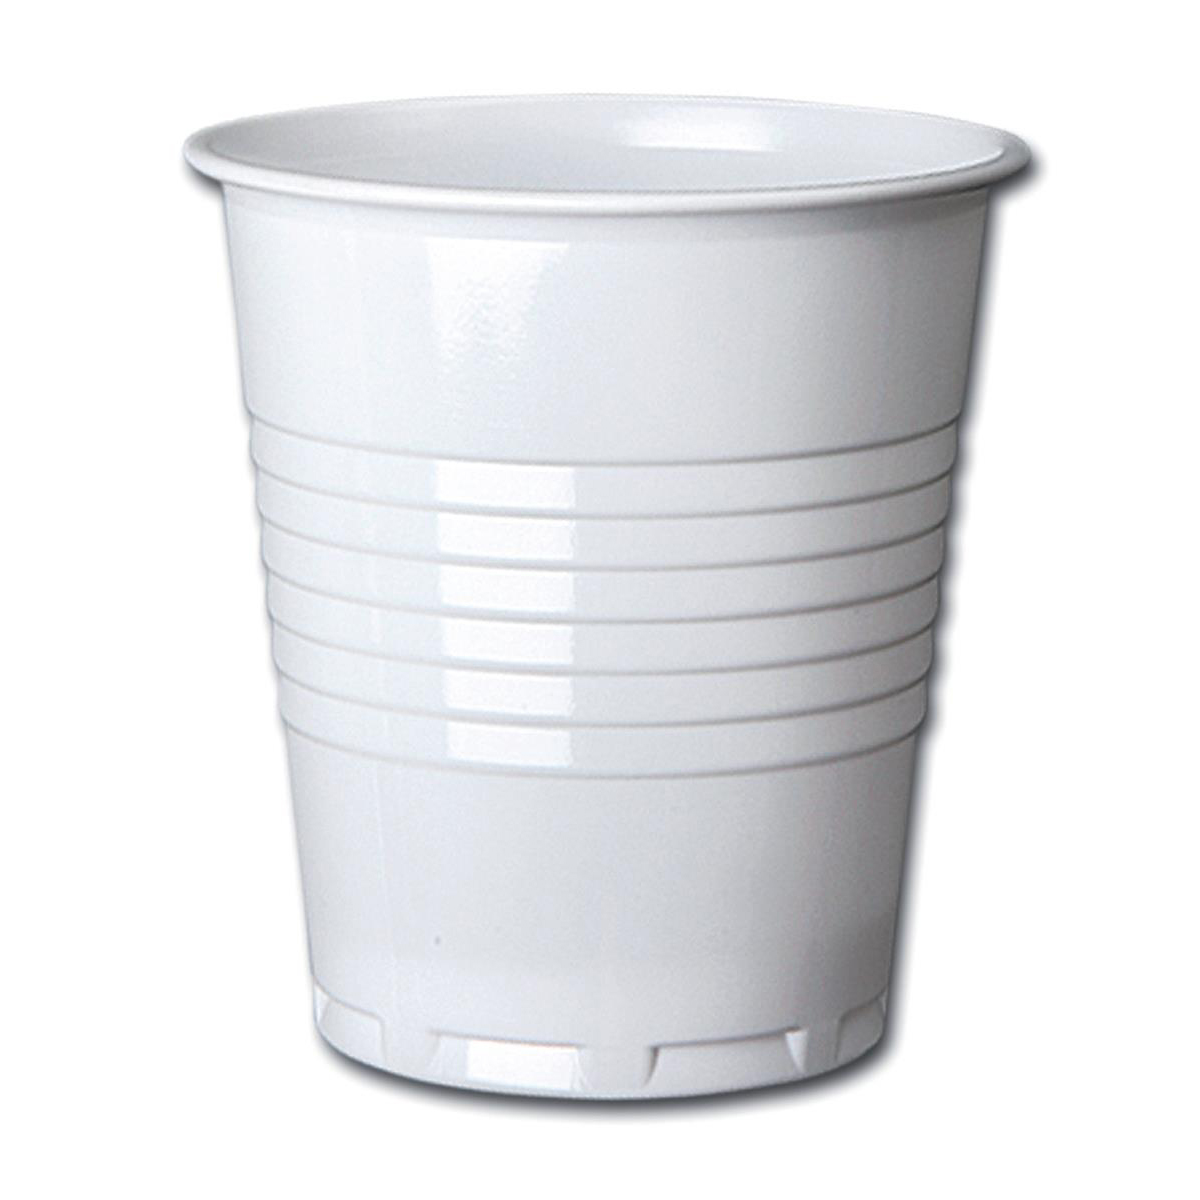 Disposable Cups & Accessories Cup for Hot Drinks Plastic for Vending Machine 7oz 207ml Squat Pack 100